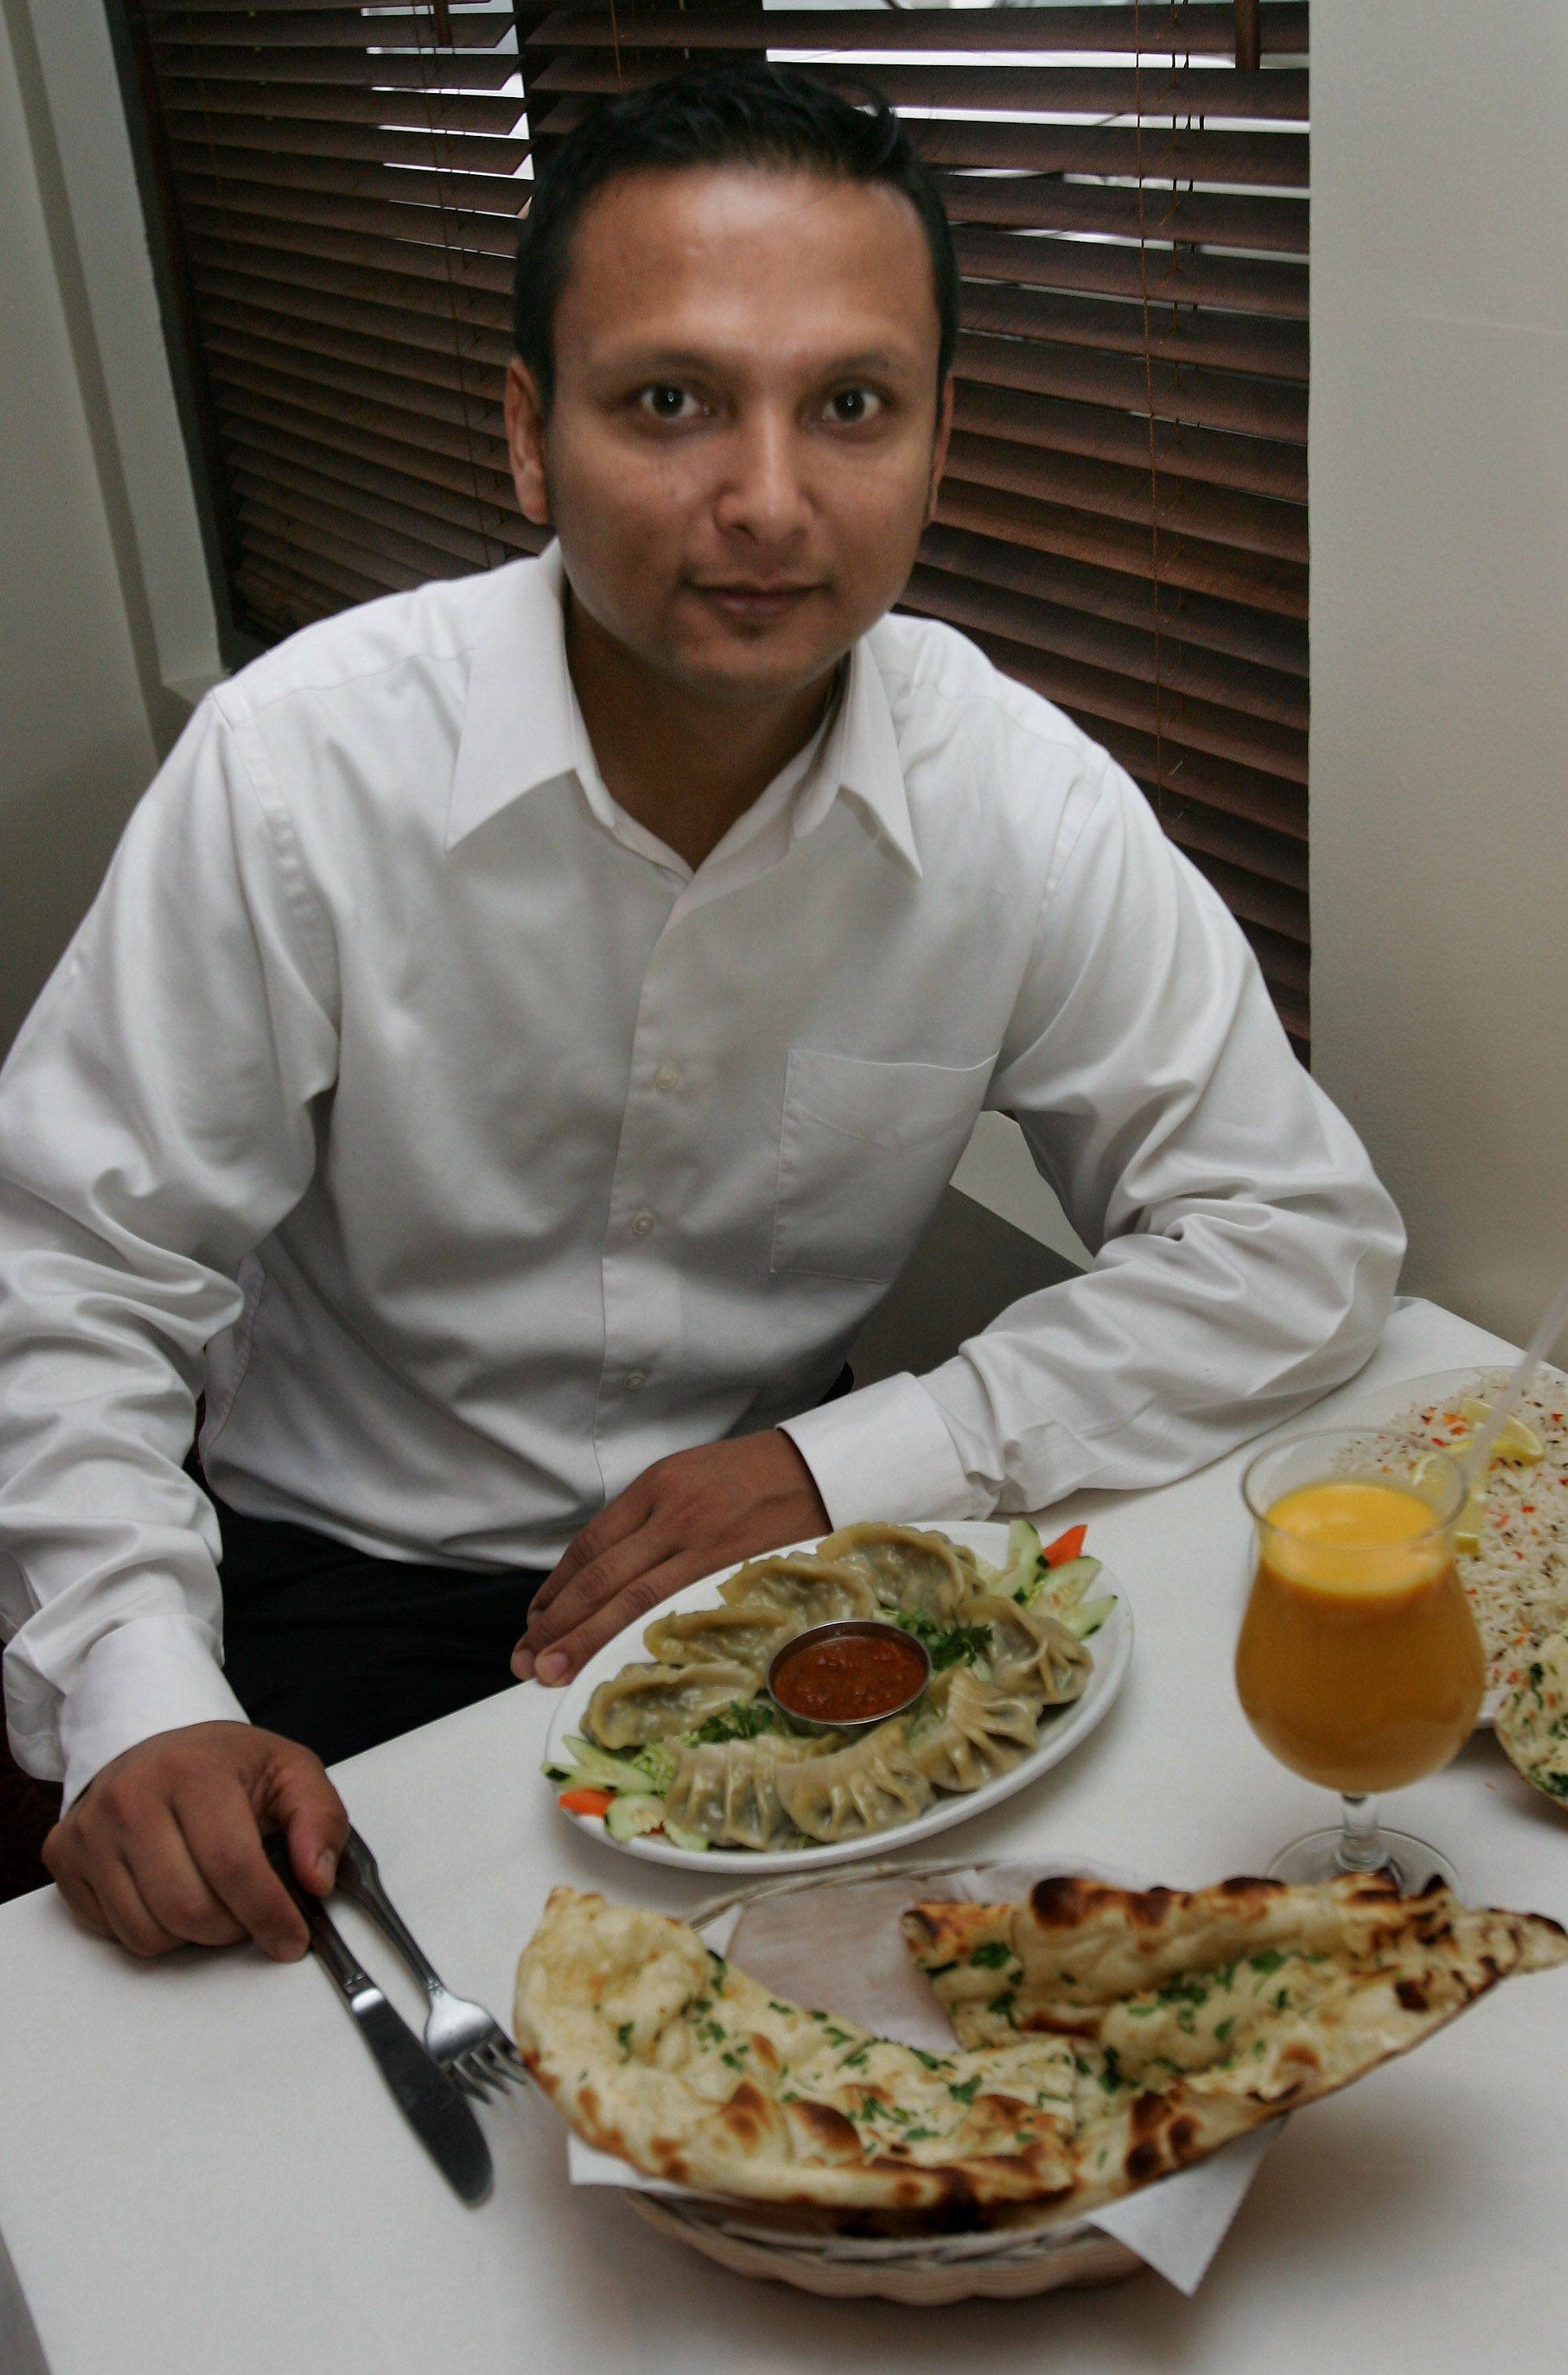 Owner Vivek Rajkunwar invites diners to try Indian/Nepalese cuisine at the Himalayan Restaurant in Gurnee.